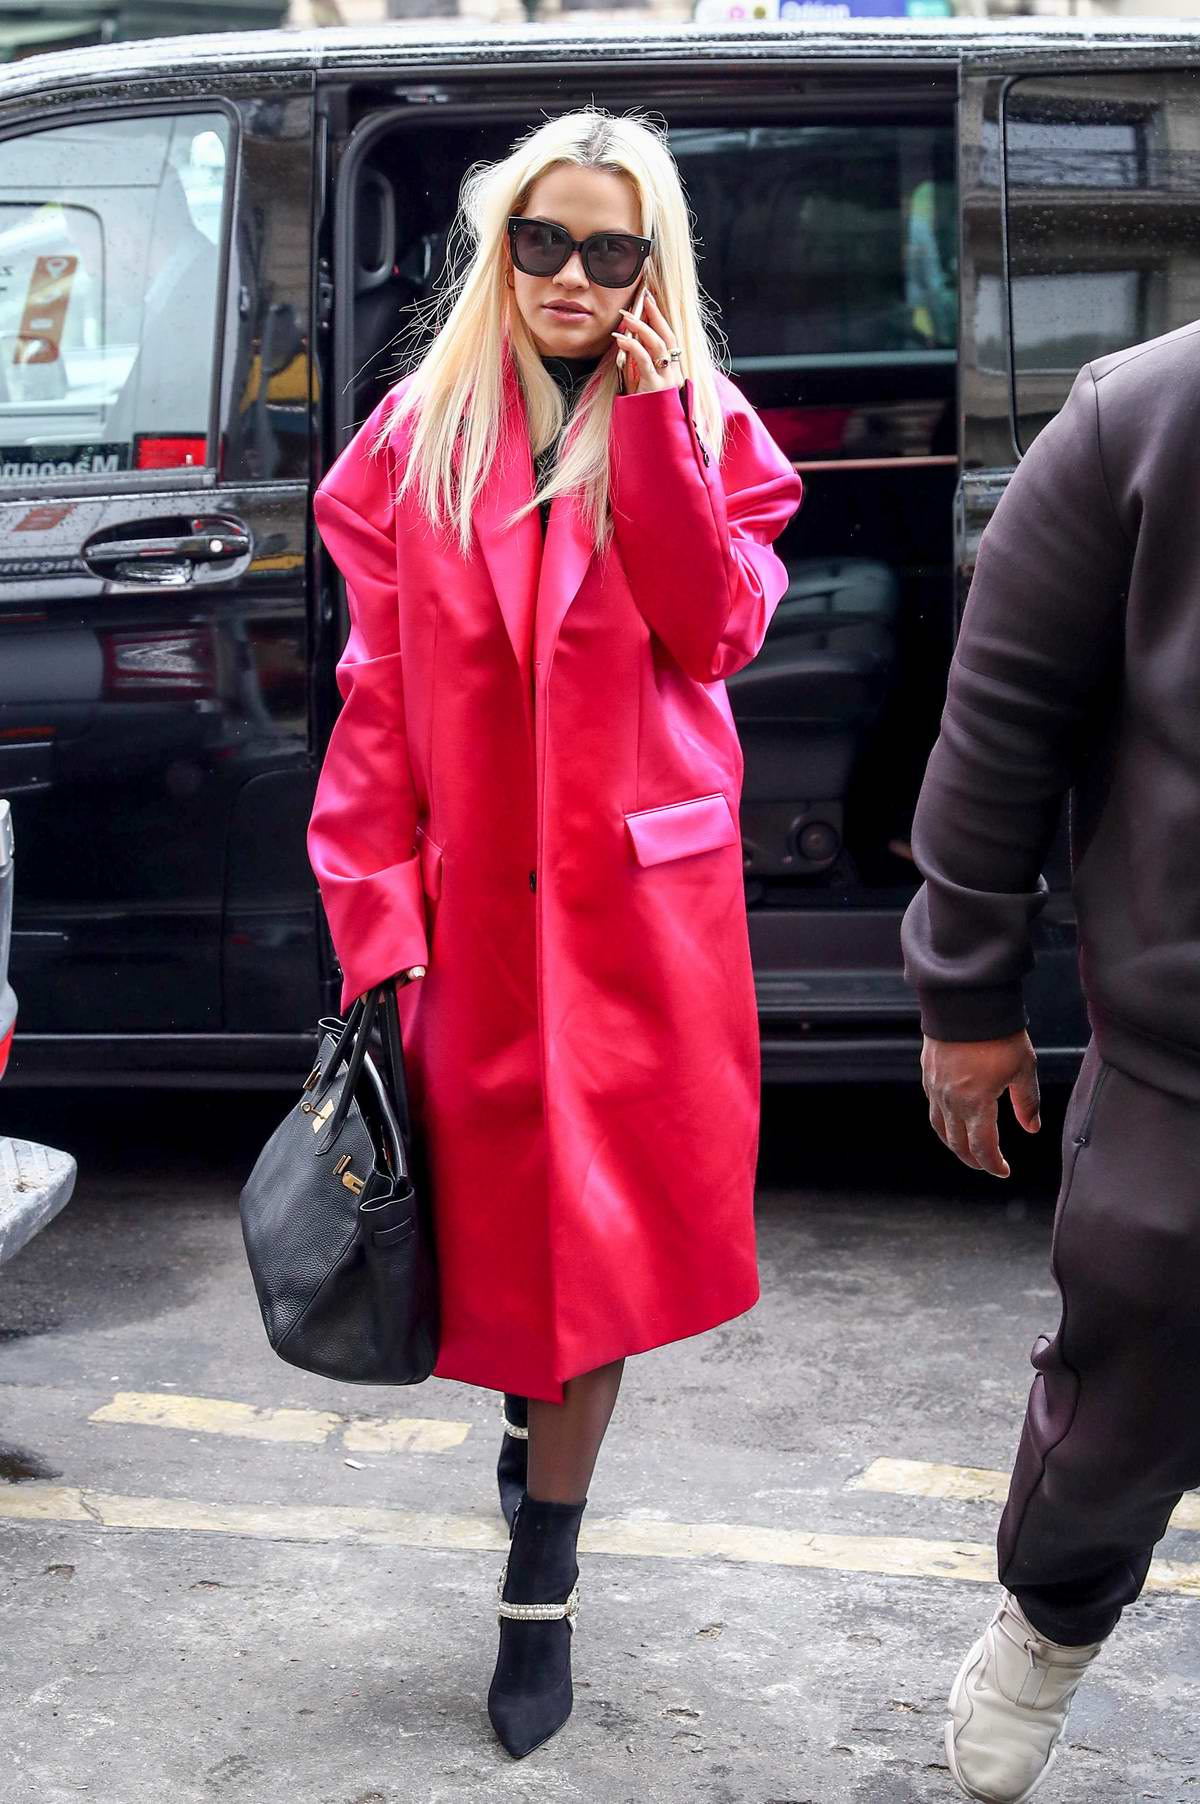 Rita Ora stands out in a fuchsia coat as she leaves Hotel Costes in Paris, France